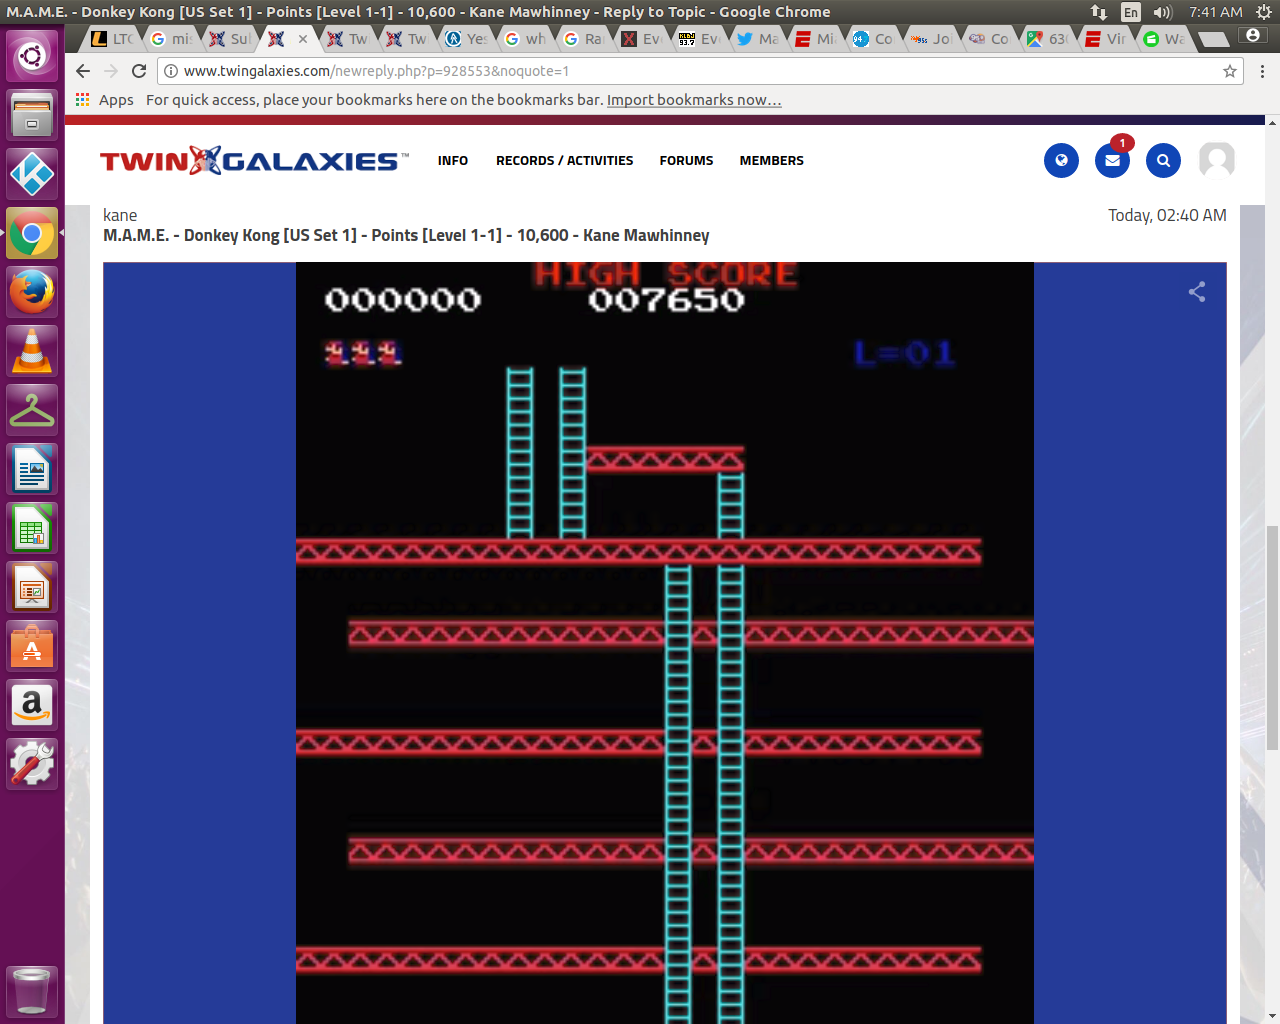 Mame Donkey Kong Us Set 1 Points Level 10600 Music View Topic The Vco 555 As Well On Thomas Henry Schematic Name Image Views 43 Size 5240 Kb